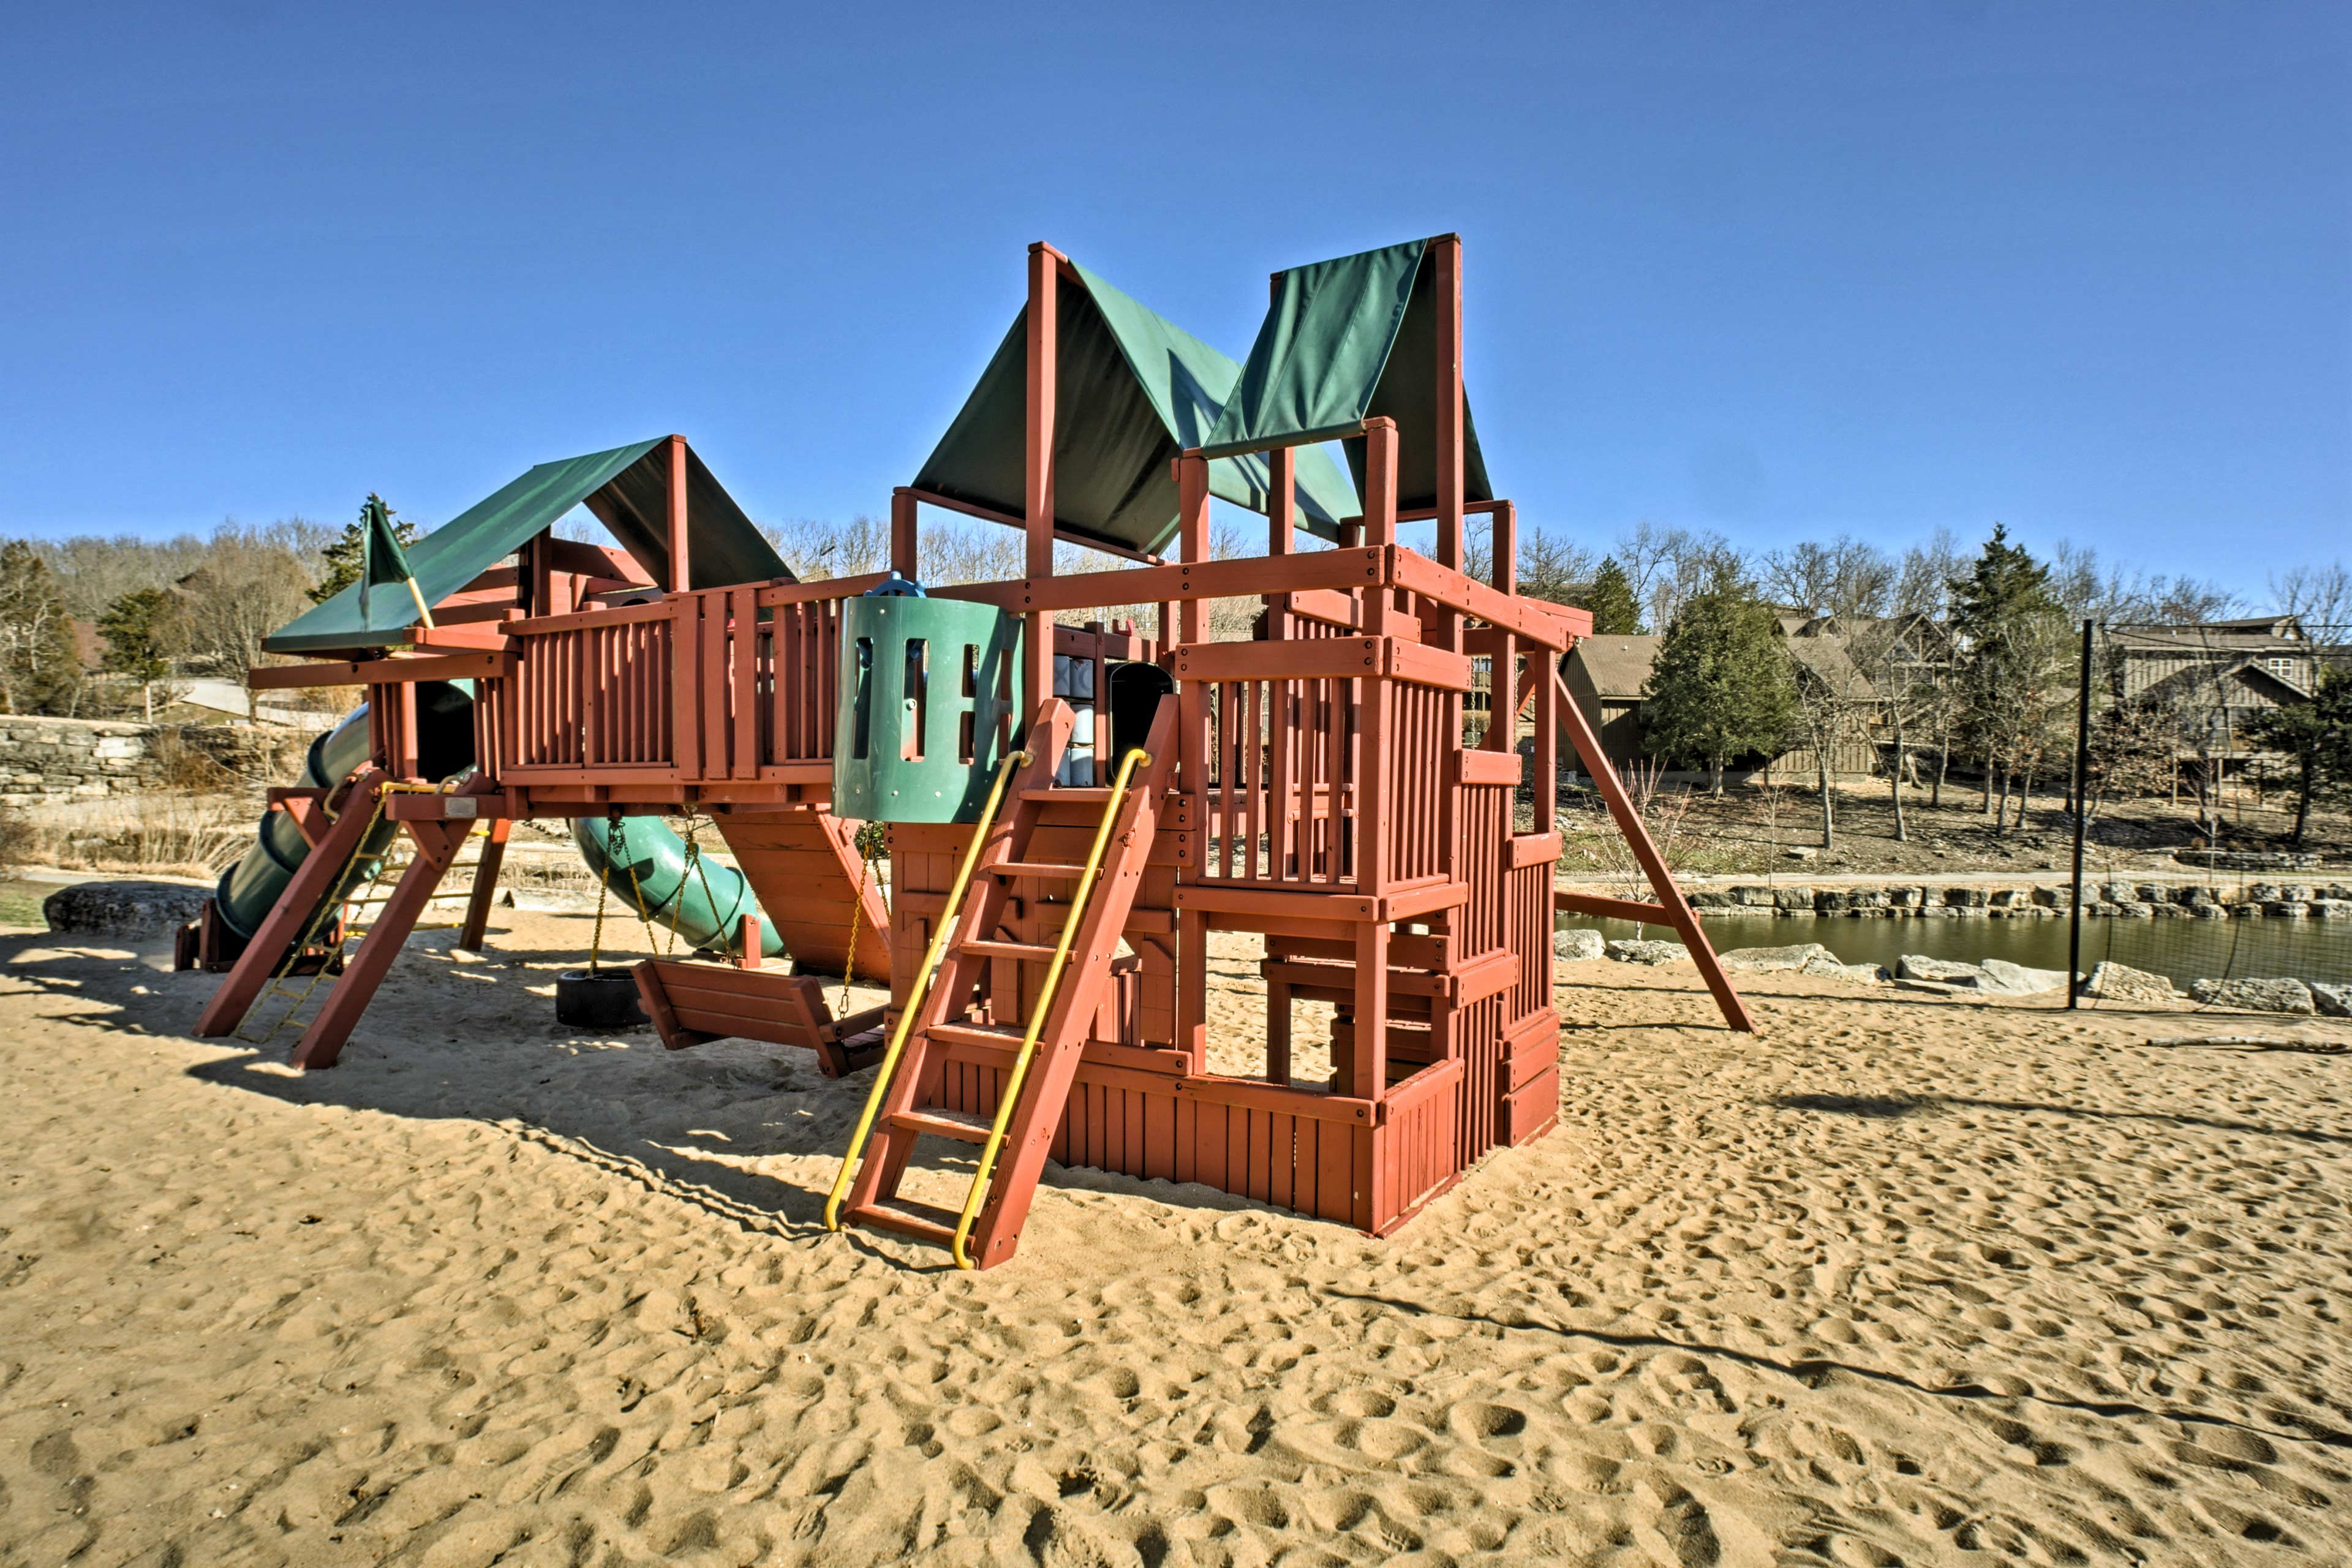 Little ones will delight at the community's playground.